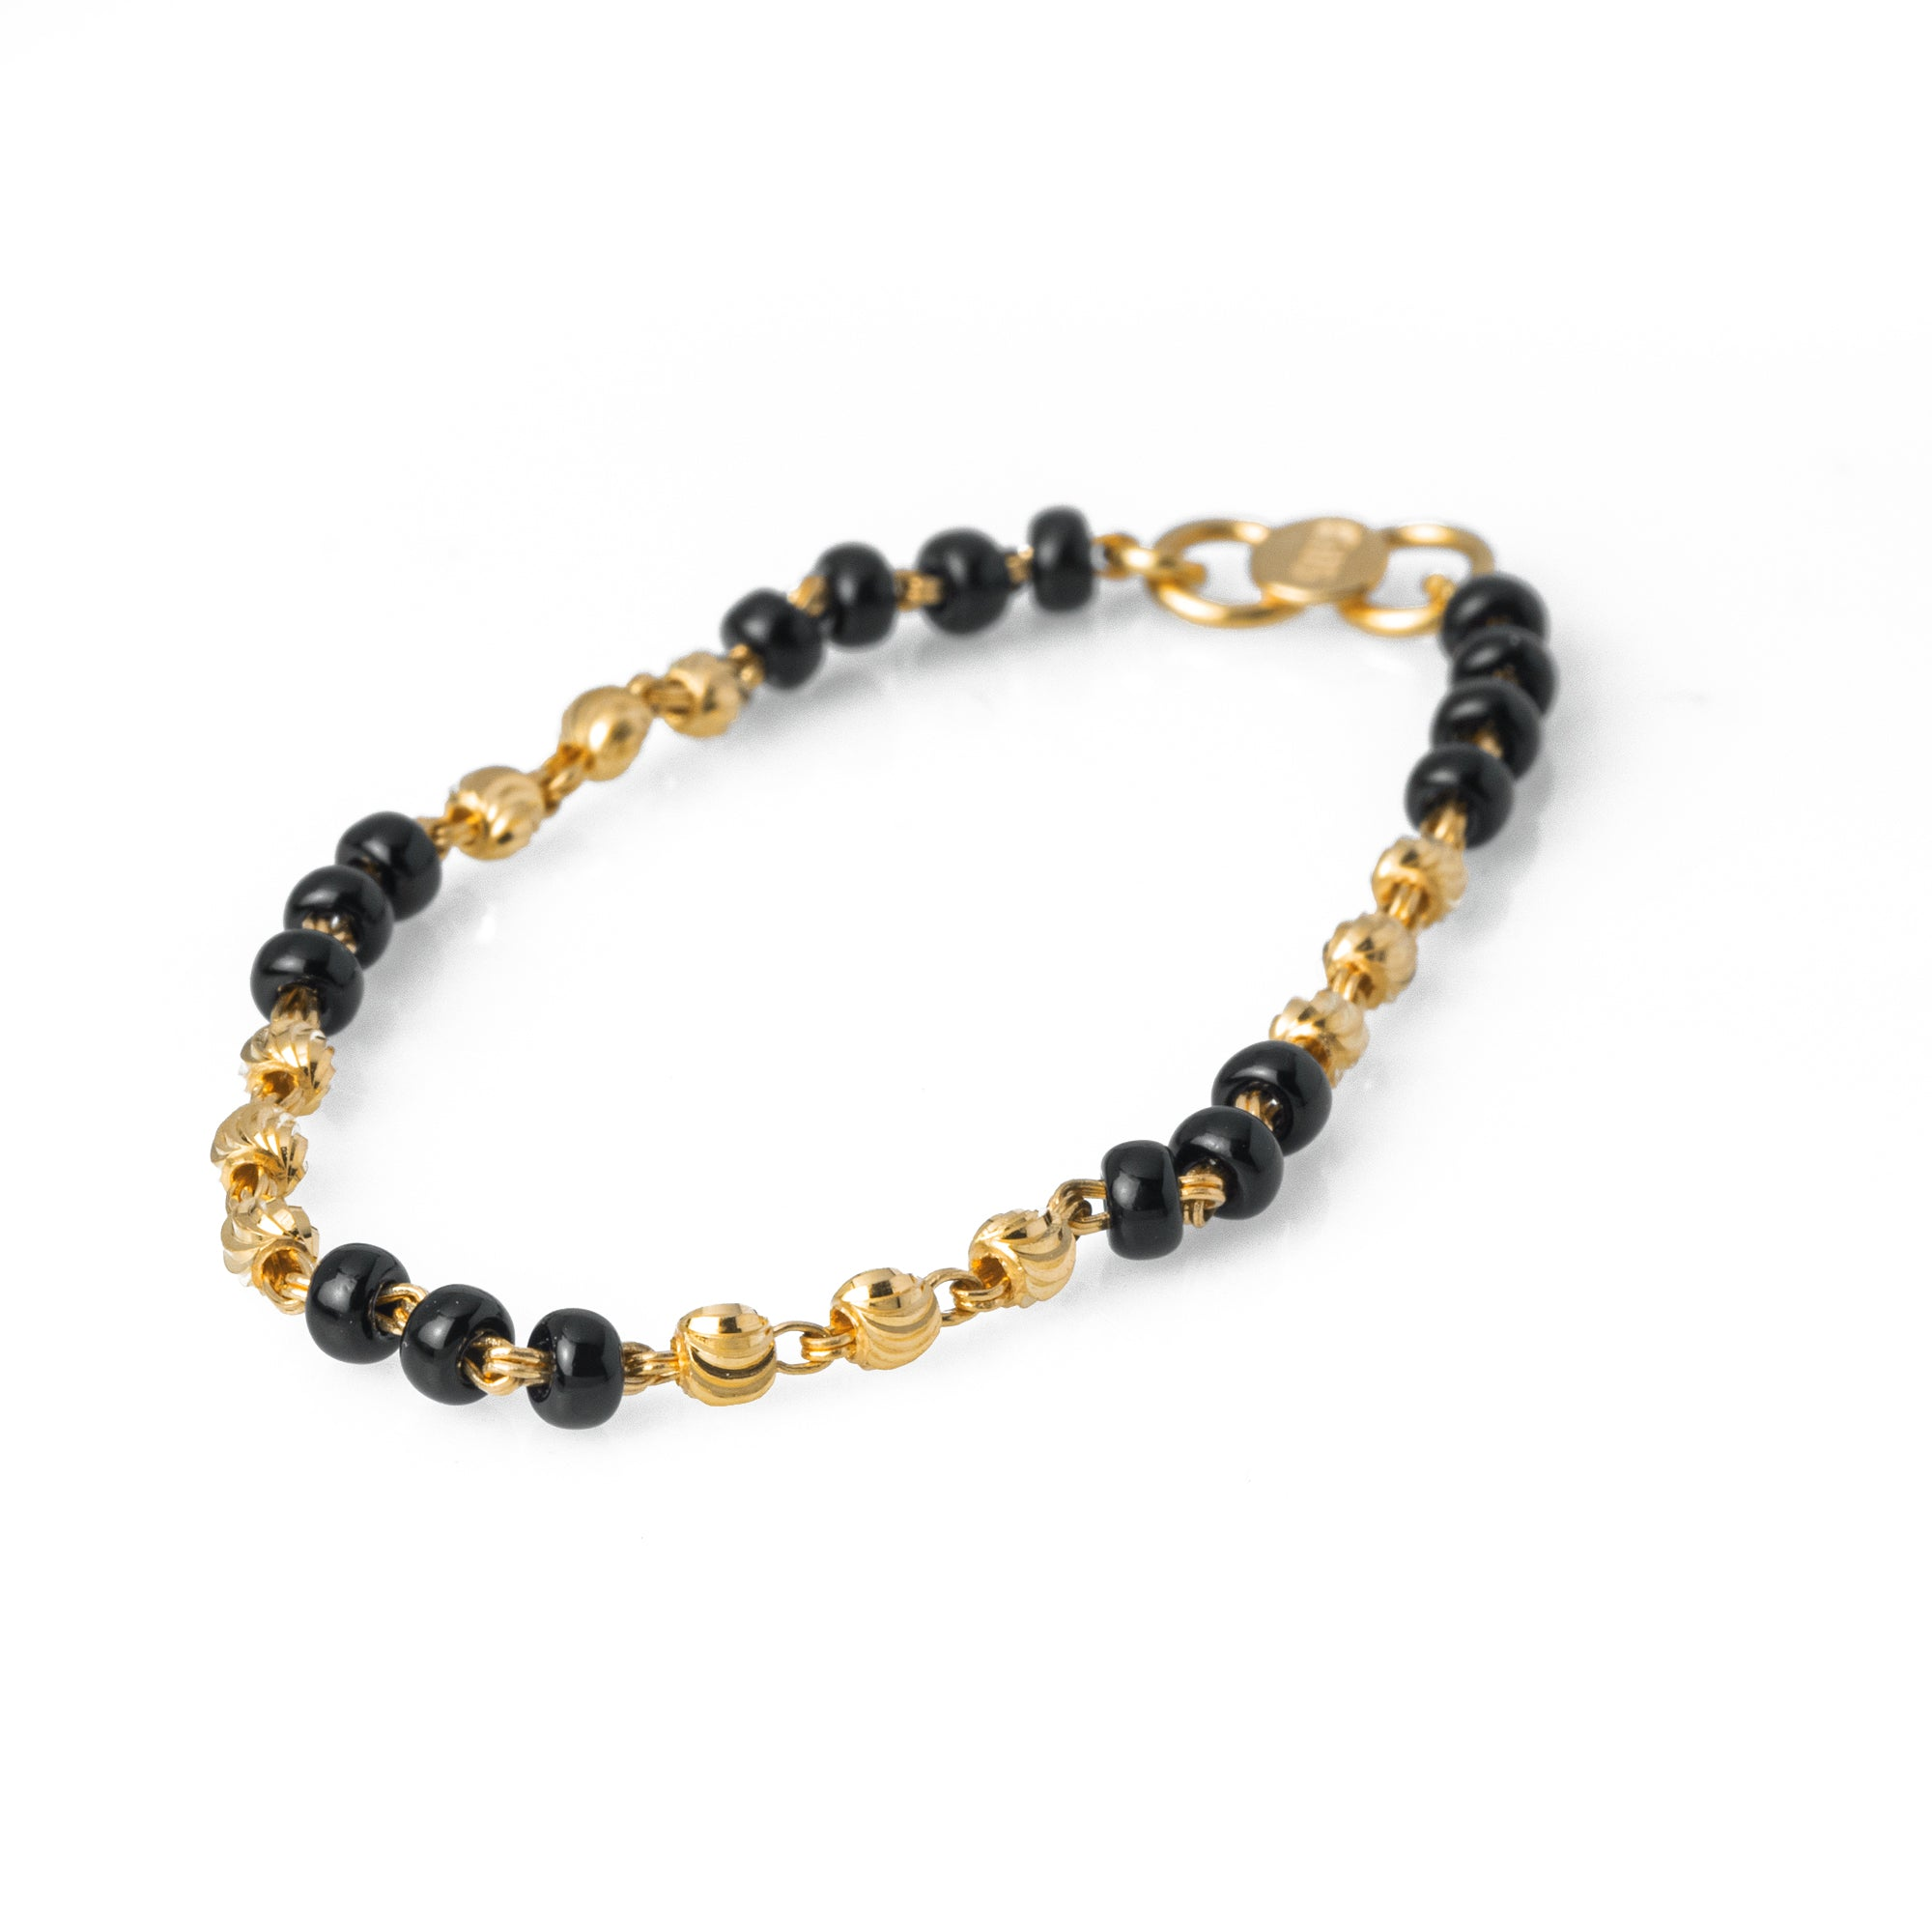 22ct Gold Children's Bracelets with Diamond Cut Design and Black Beads CBR-7966